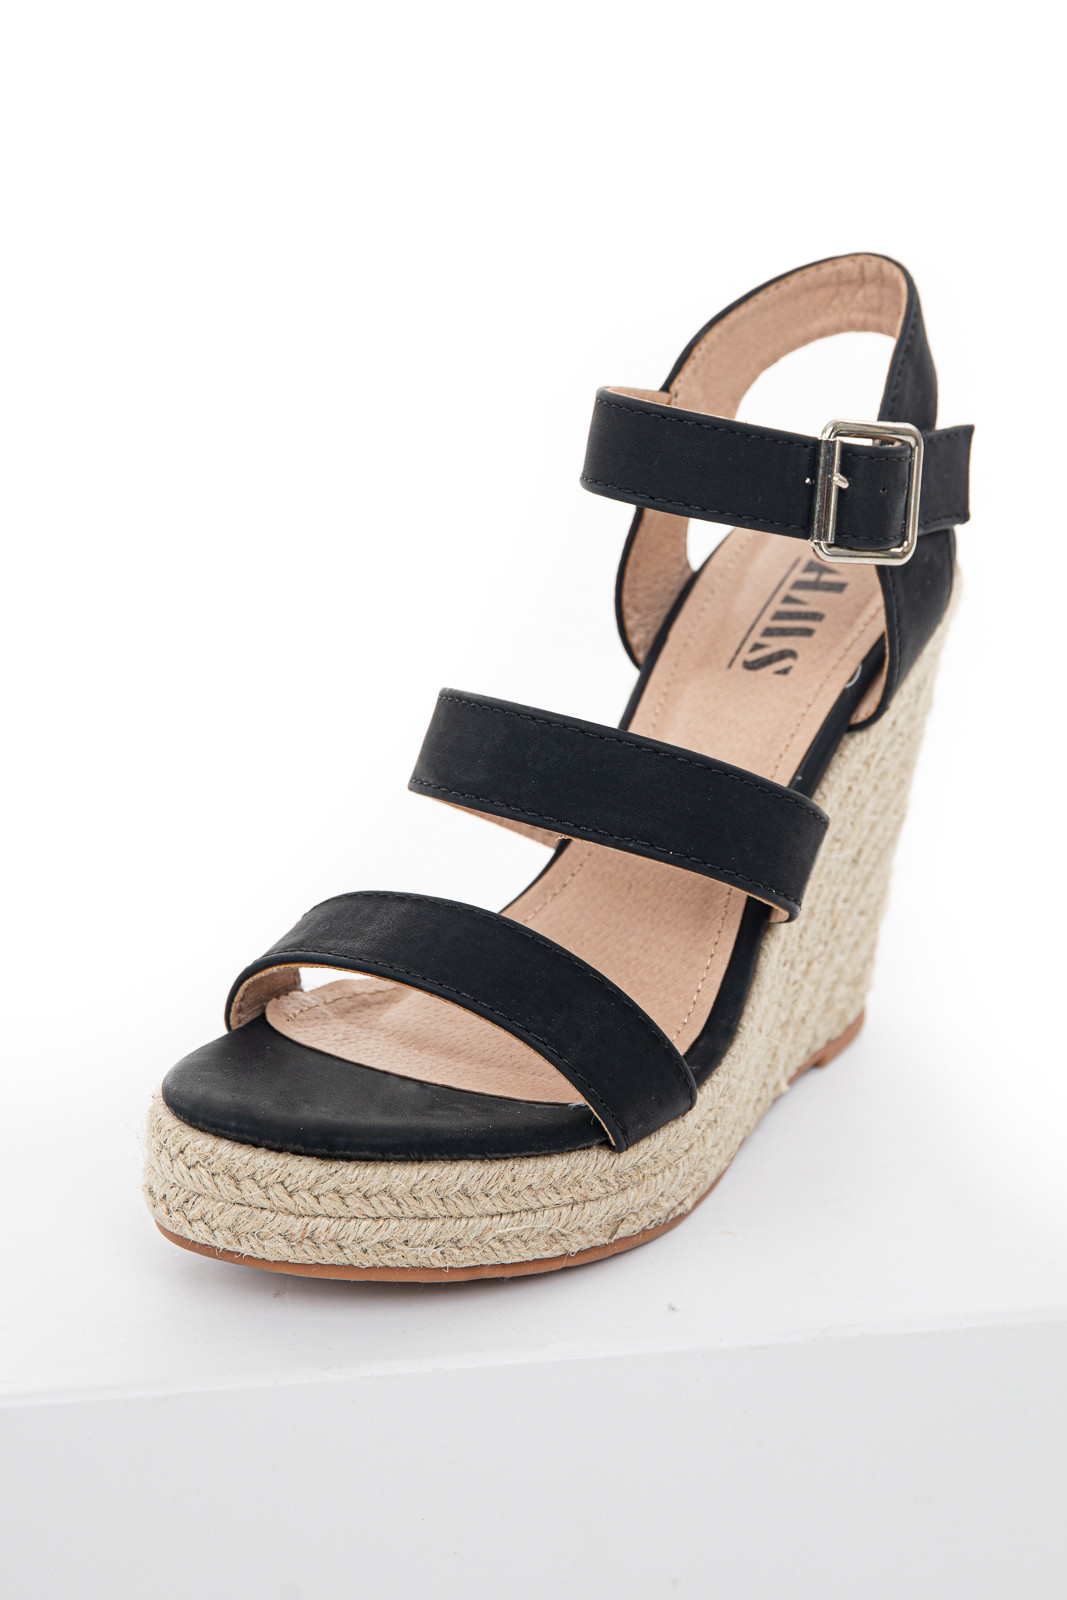 Black Strappy High Heel Espadrille Wedges with Open Toe